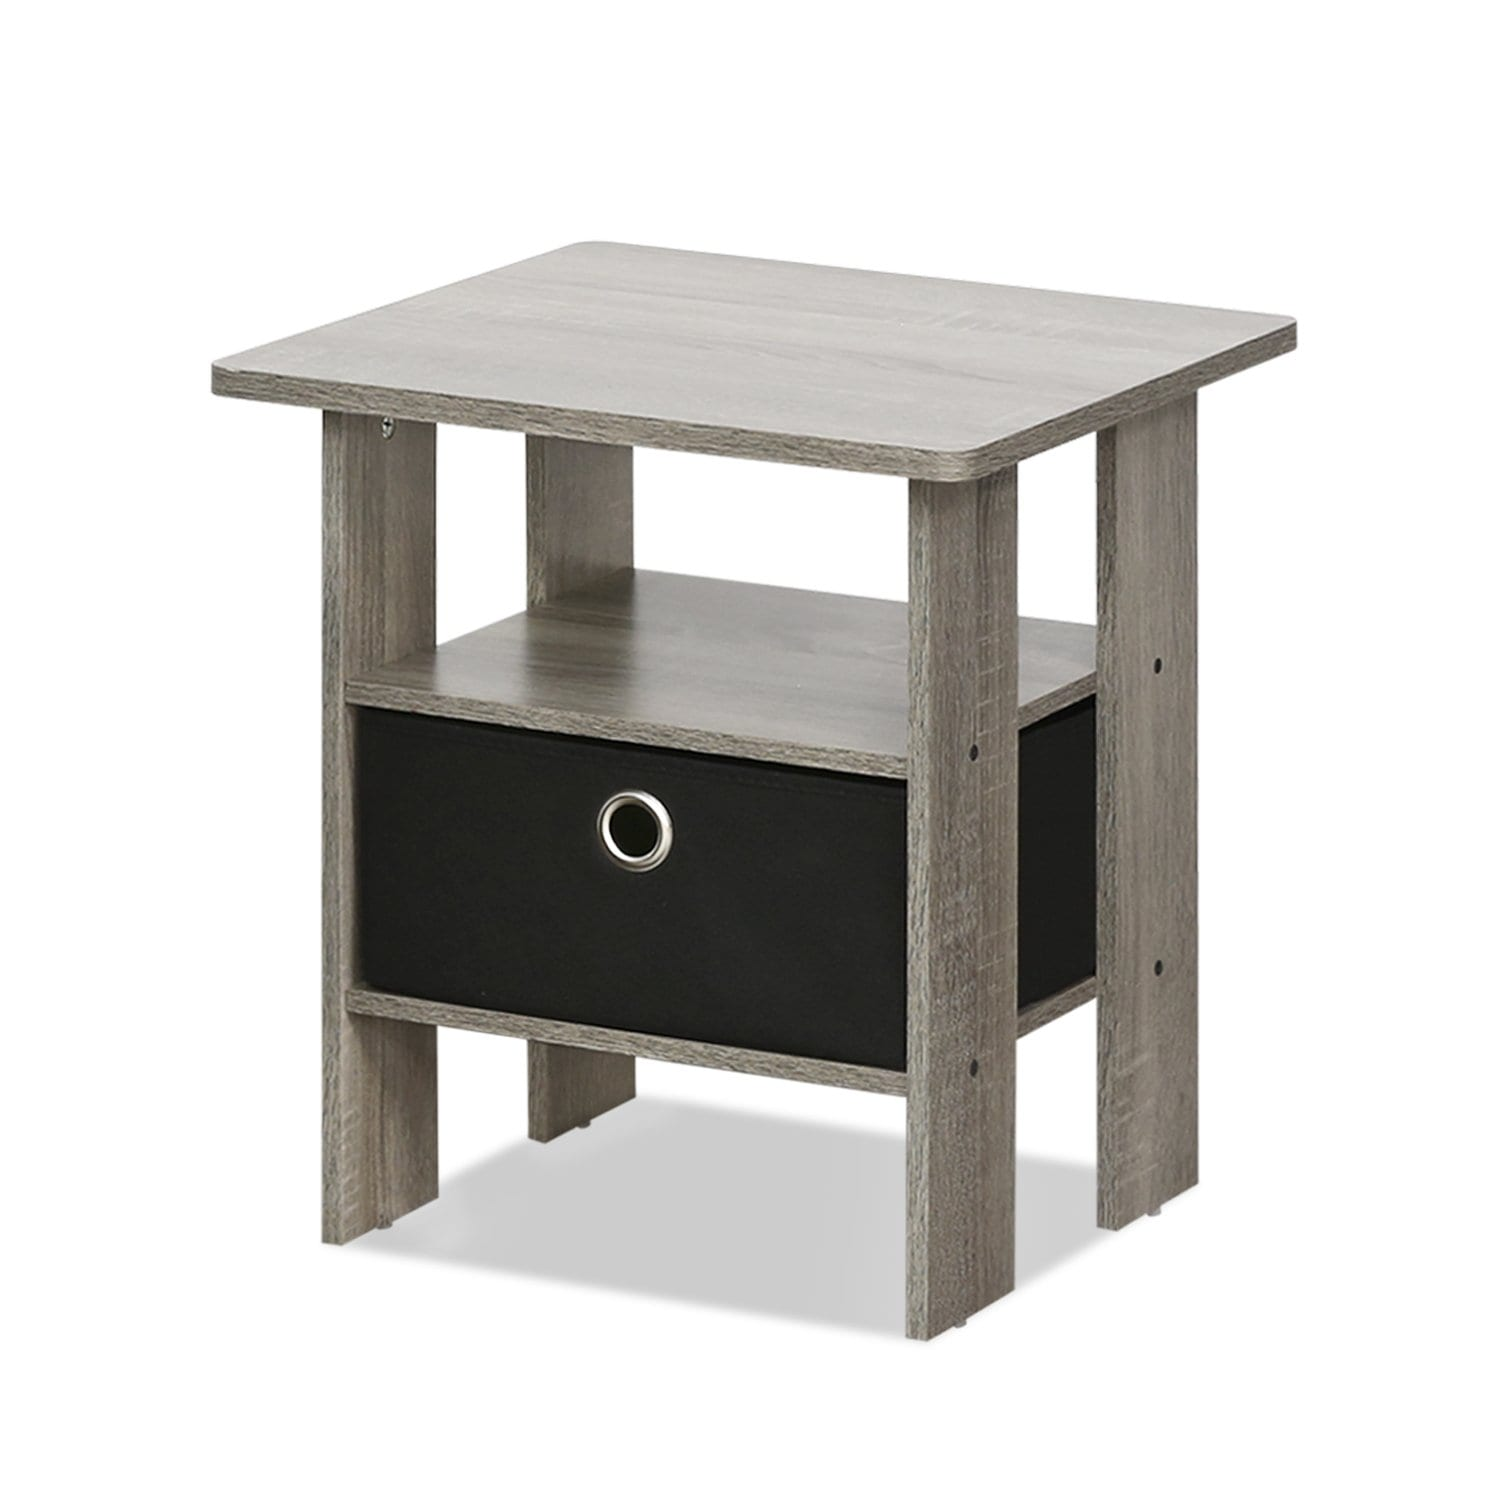 1. Furinno 11157GywBk Night Stand 1 End Table French Oak Grey